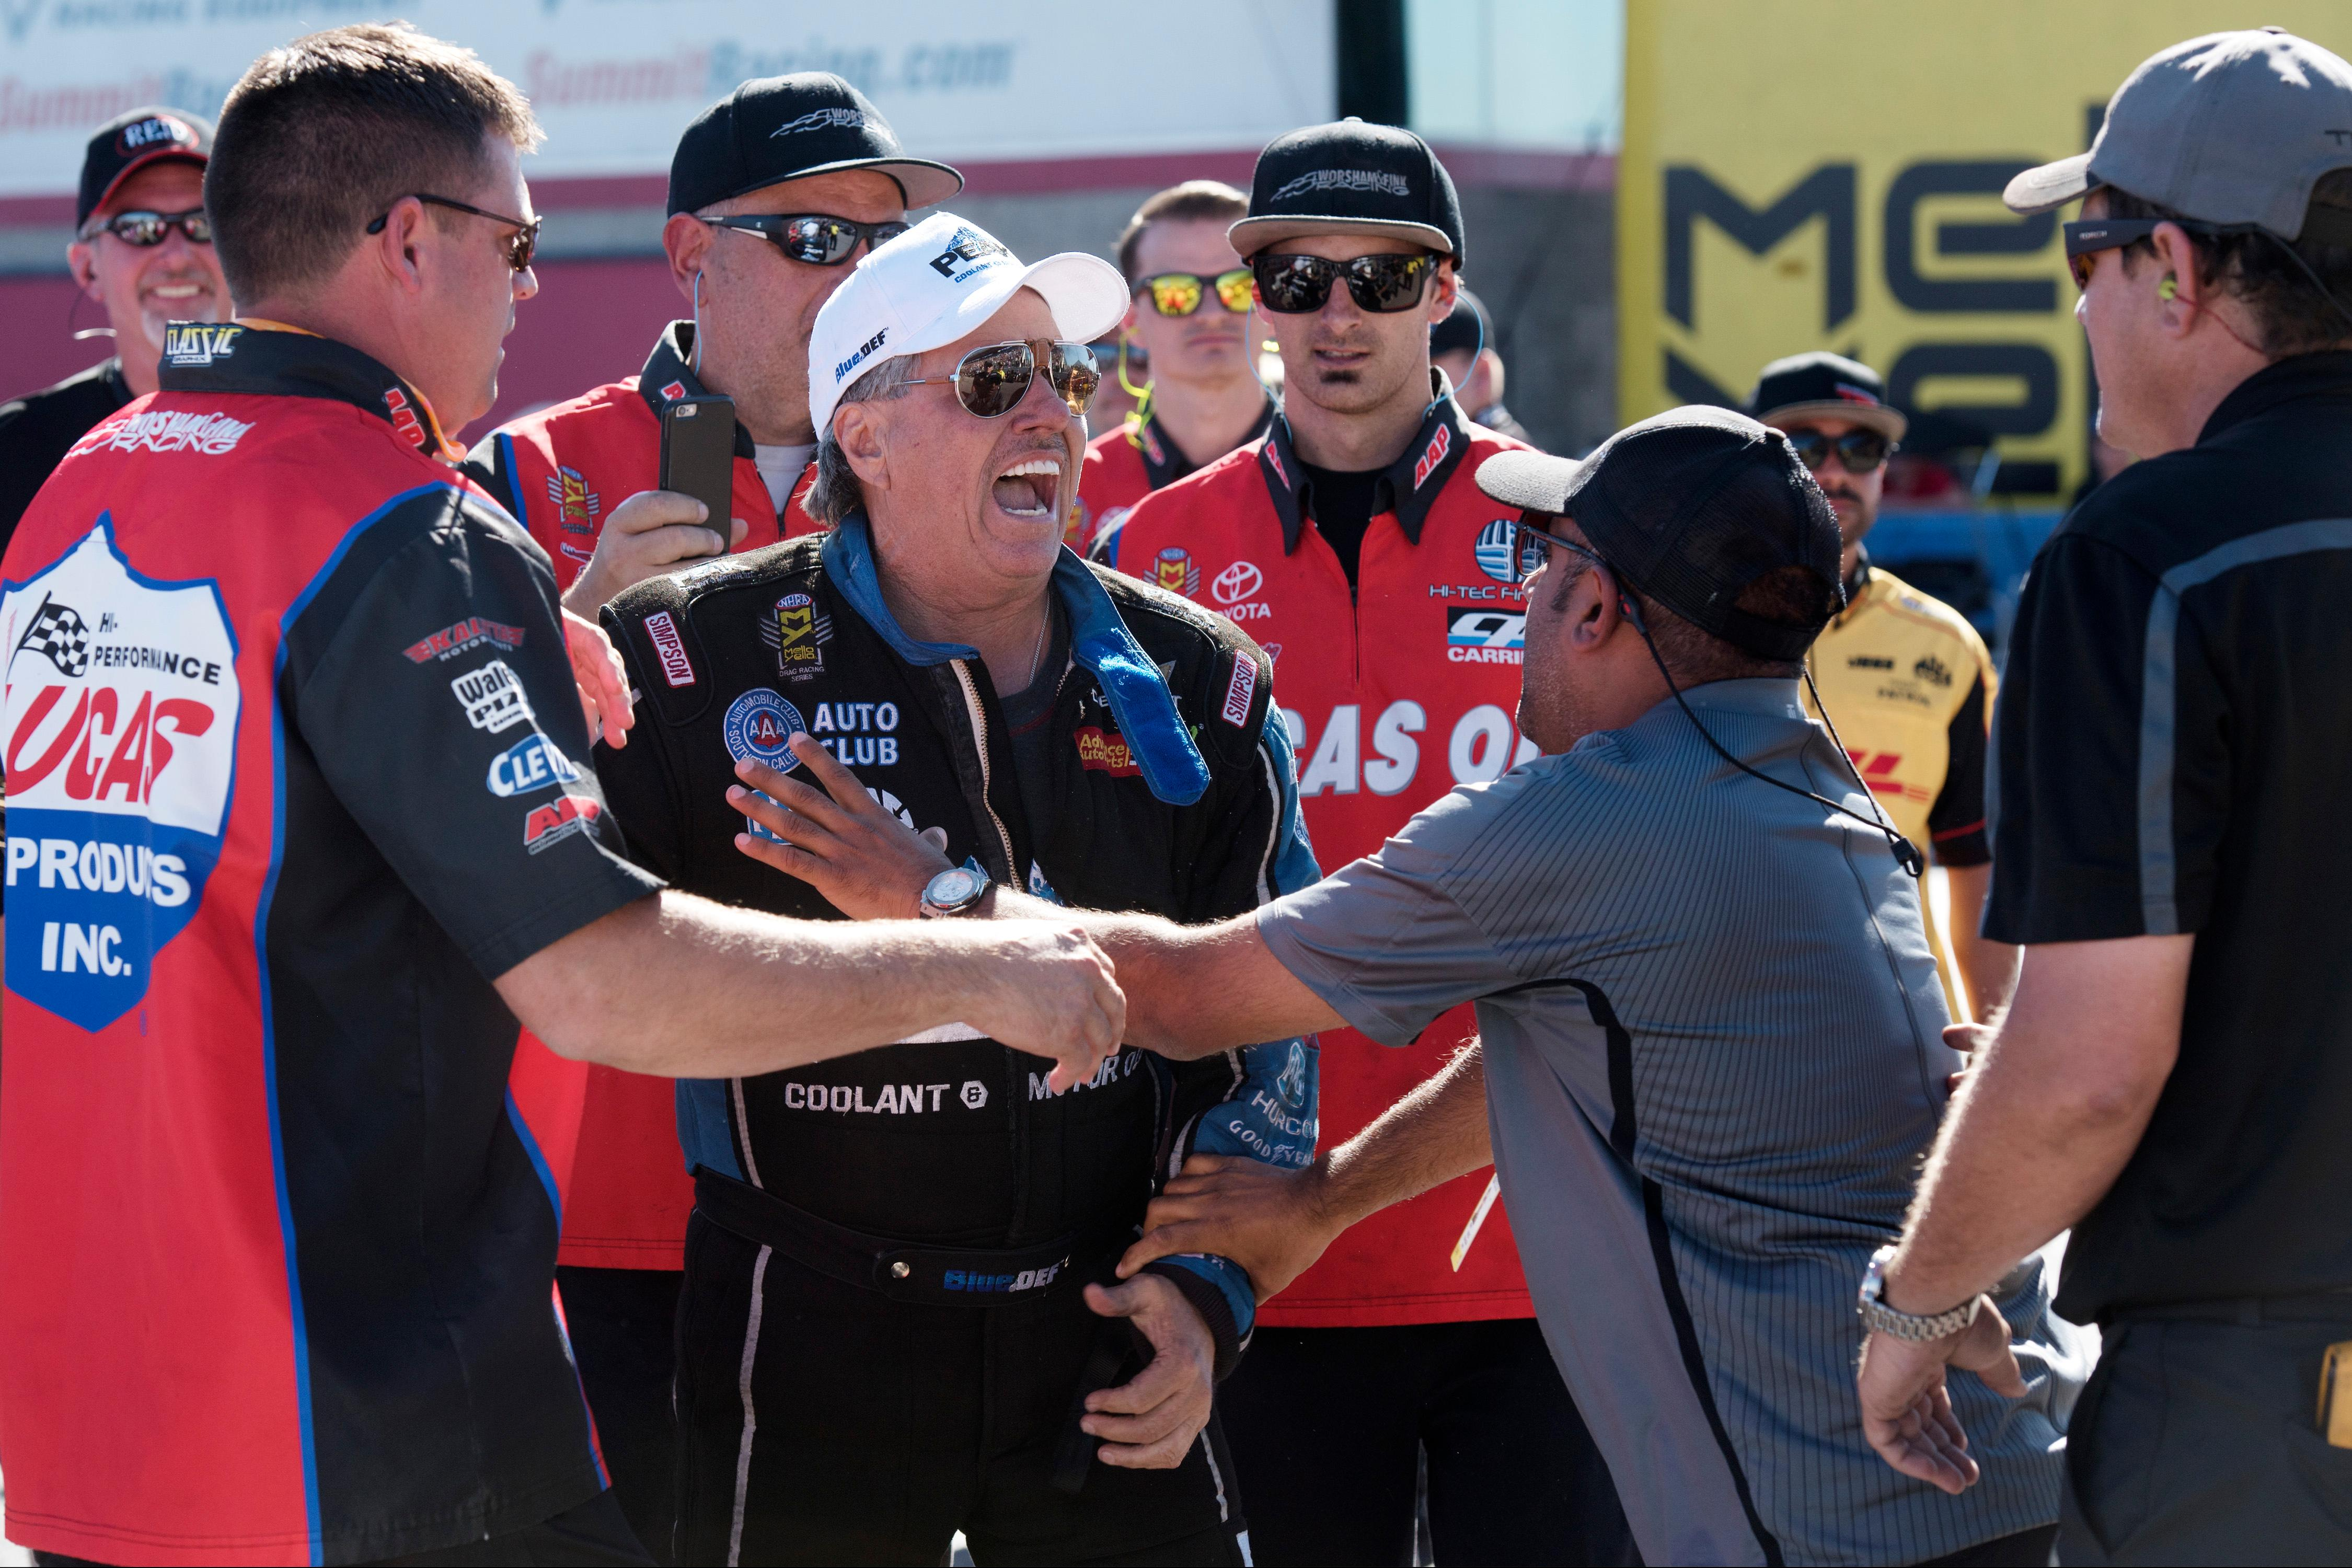 Funny Car driver and team owner John Force gets in a heated exchange with Funny Car driver Chad Head during the NHRA Toyota Nationals Sunday, October 29, 2017, at The Strip at the Las Vegas Motor Speedway. CREDIT: Sam Morris/Las Vegas News Bureau